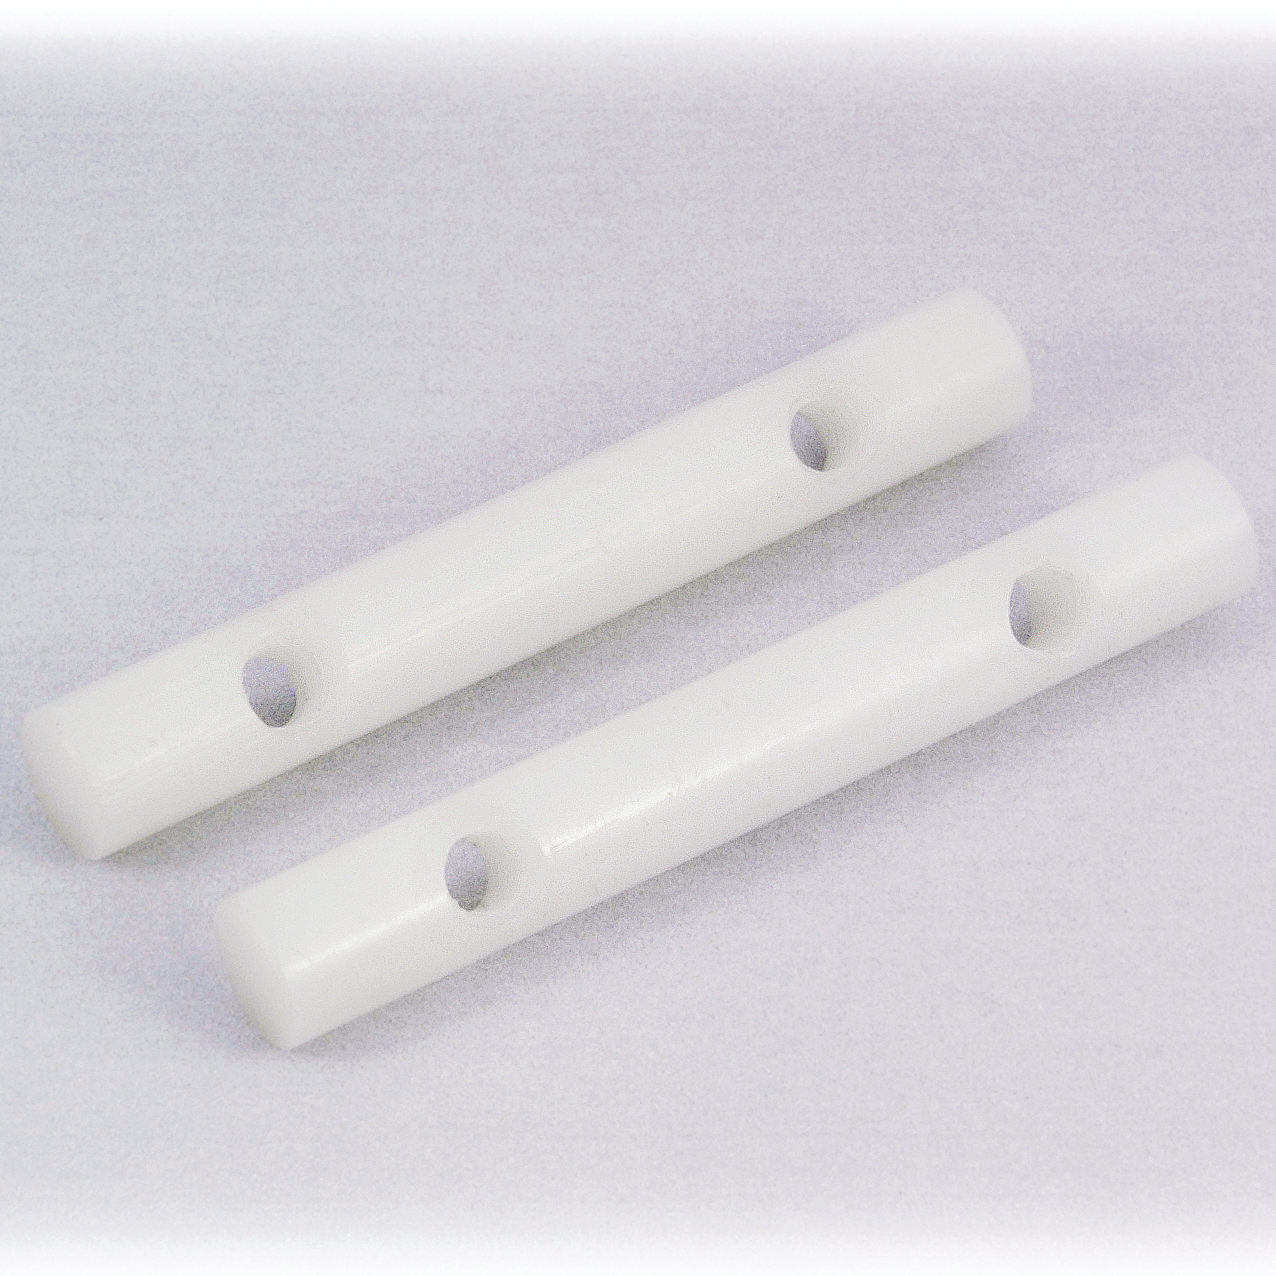 K Series Track End Rods